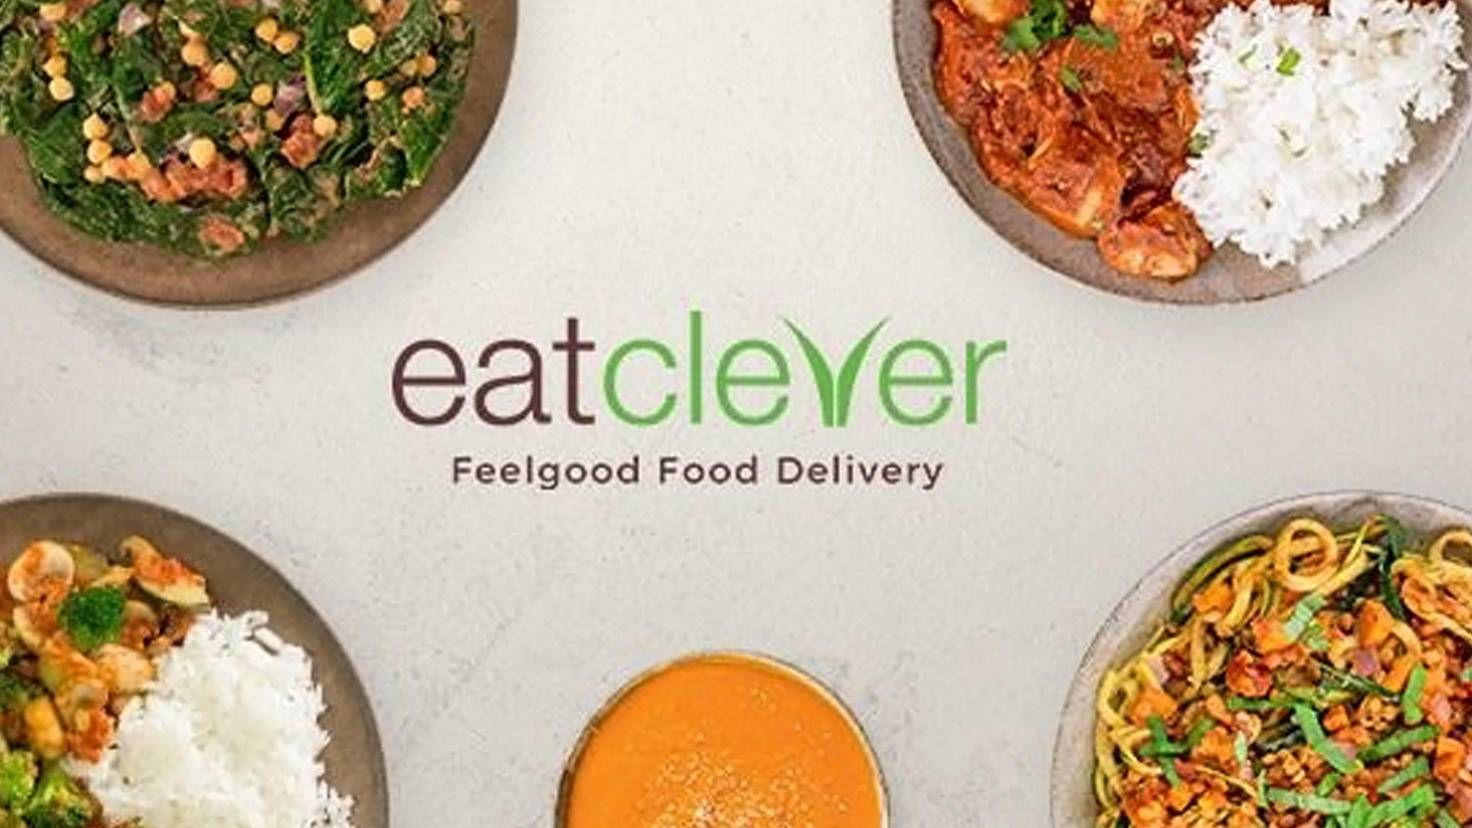 eatclever-Facebook-eatclever